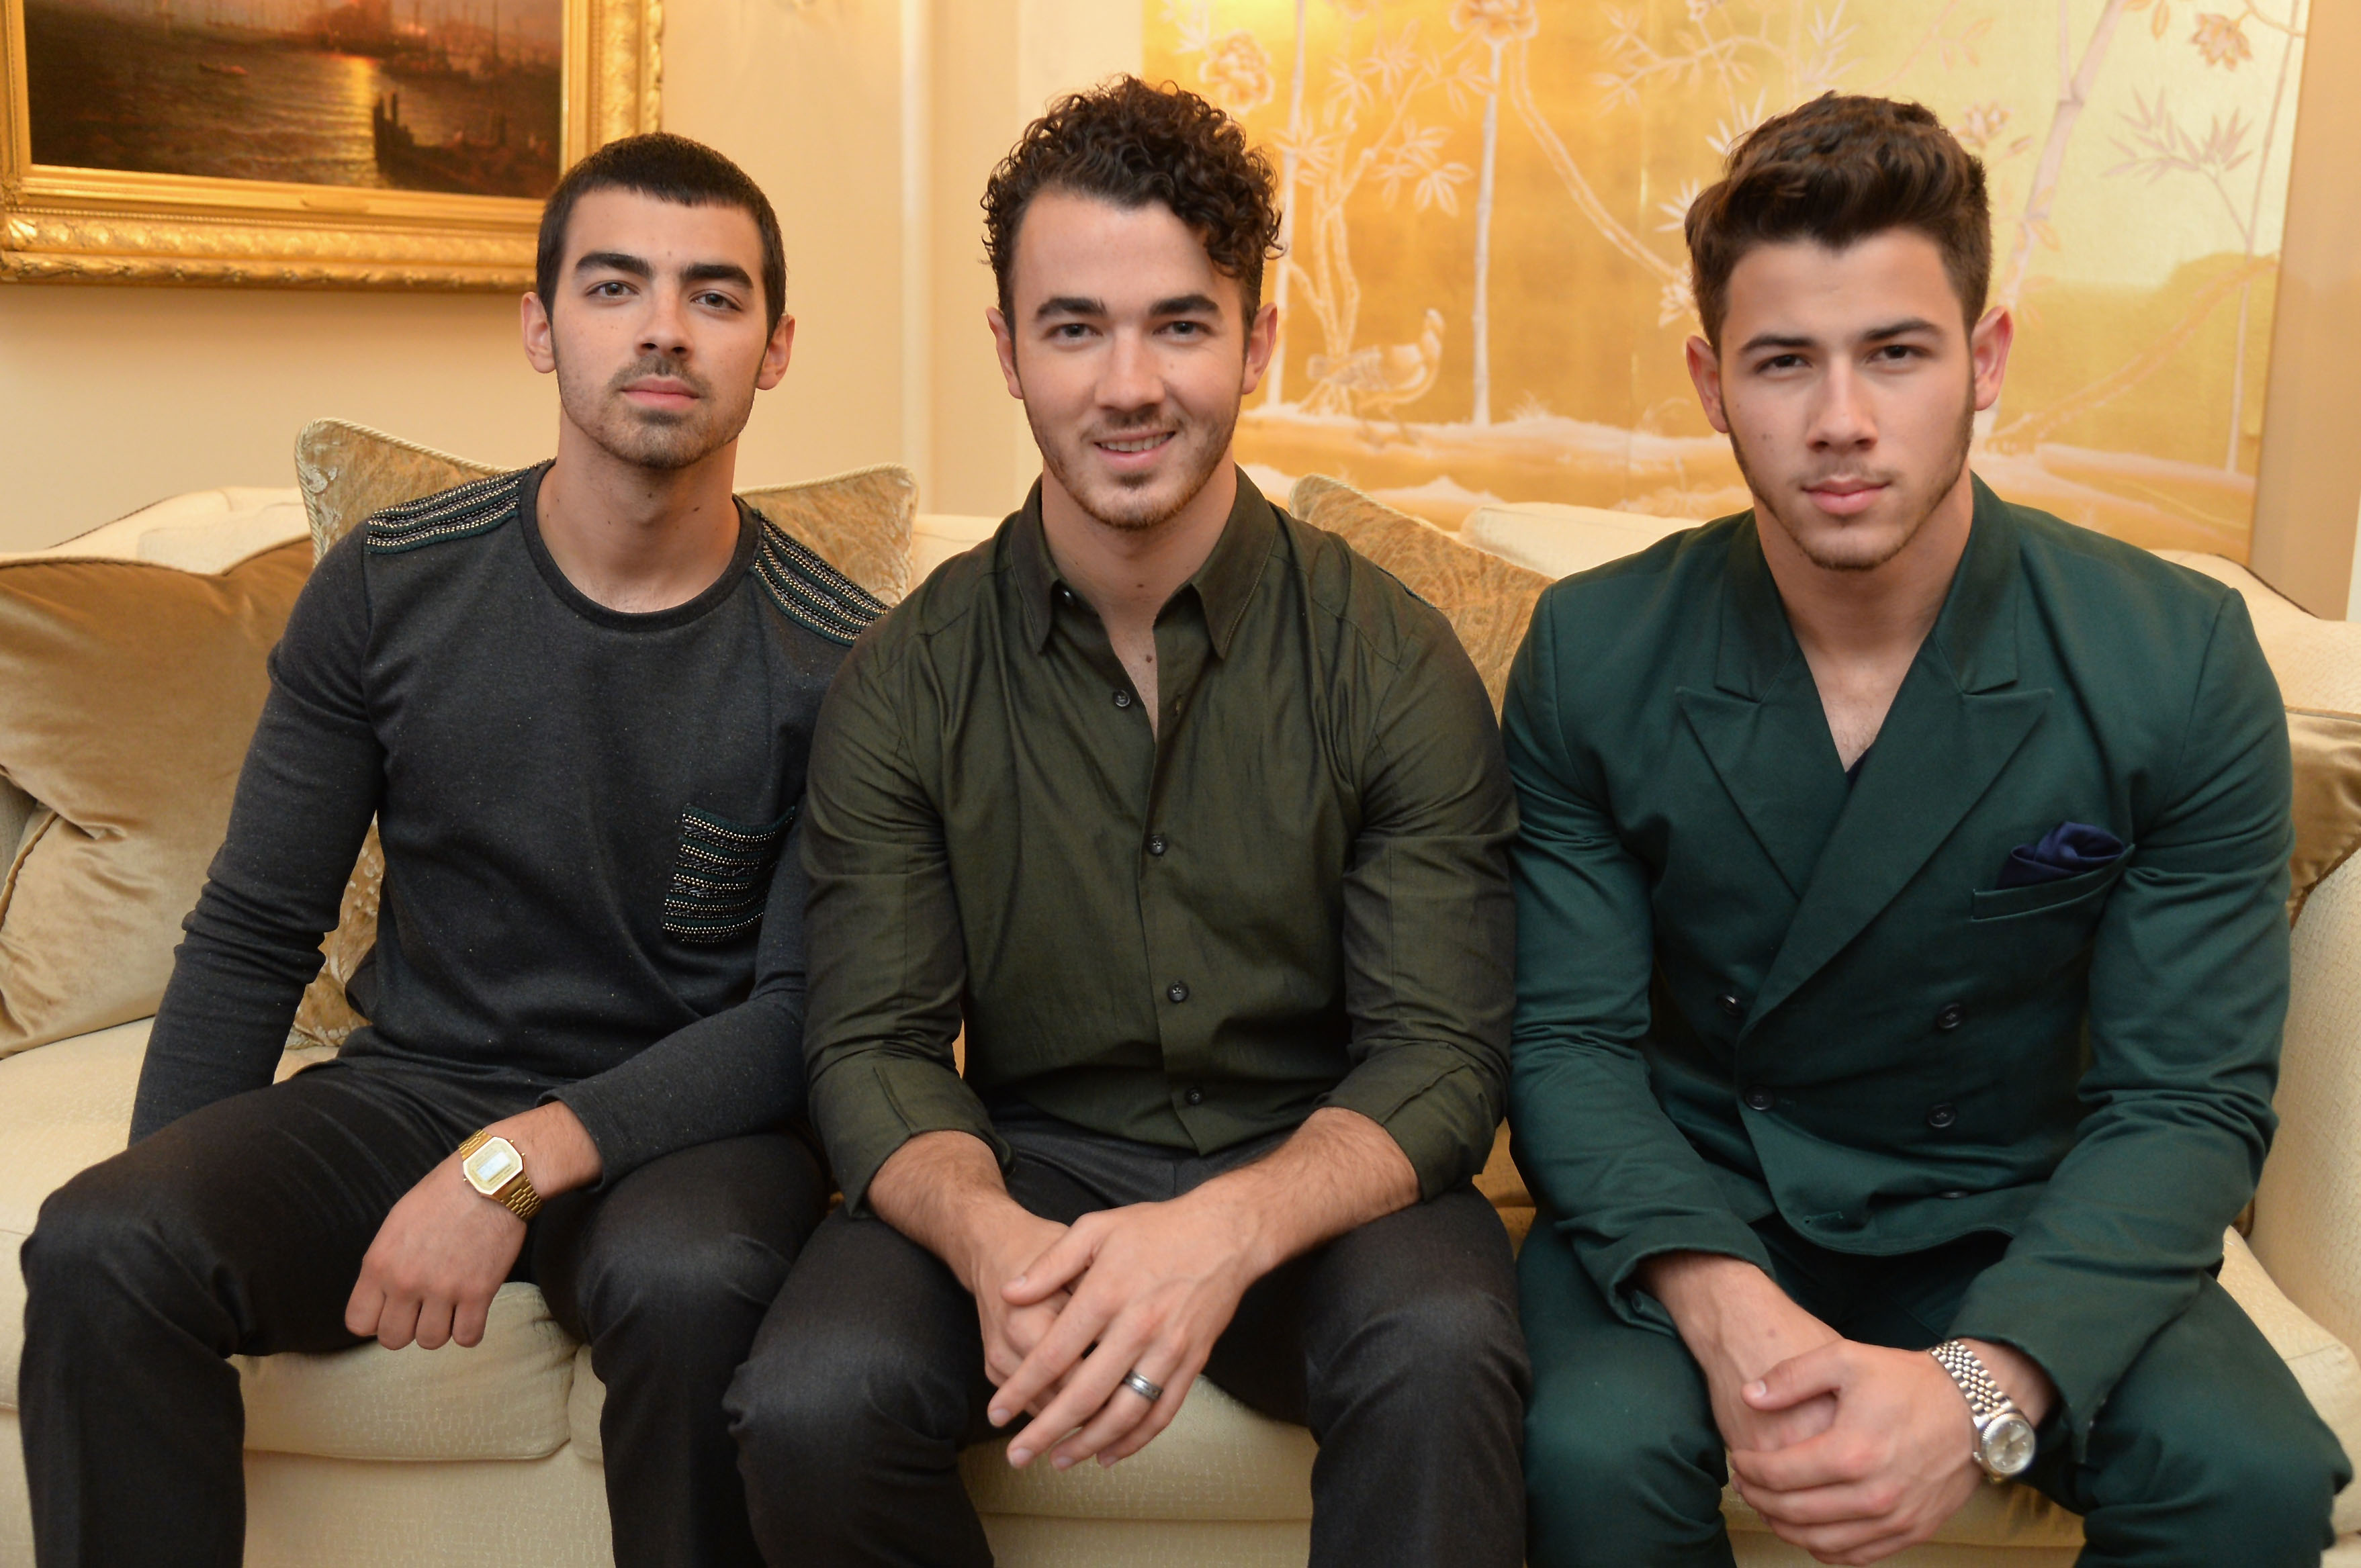 Joe, Kevin, and Nick Jonas in September 2013 (Getty Images)